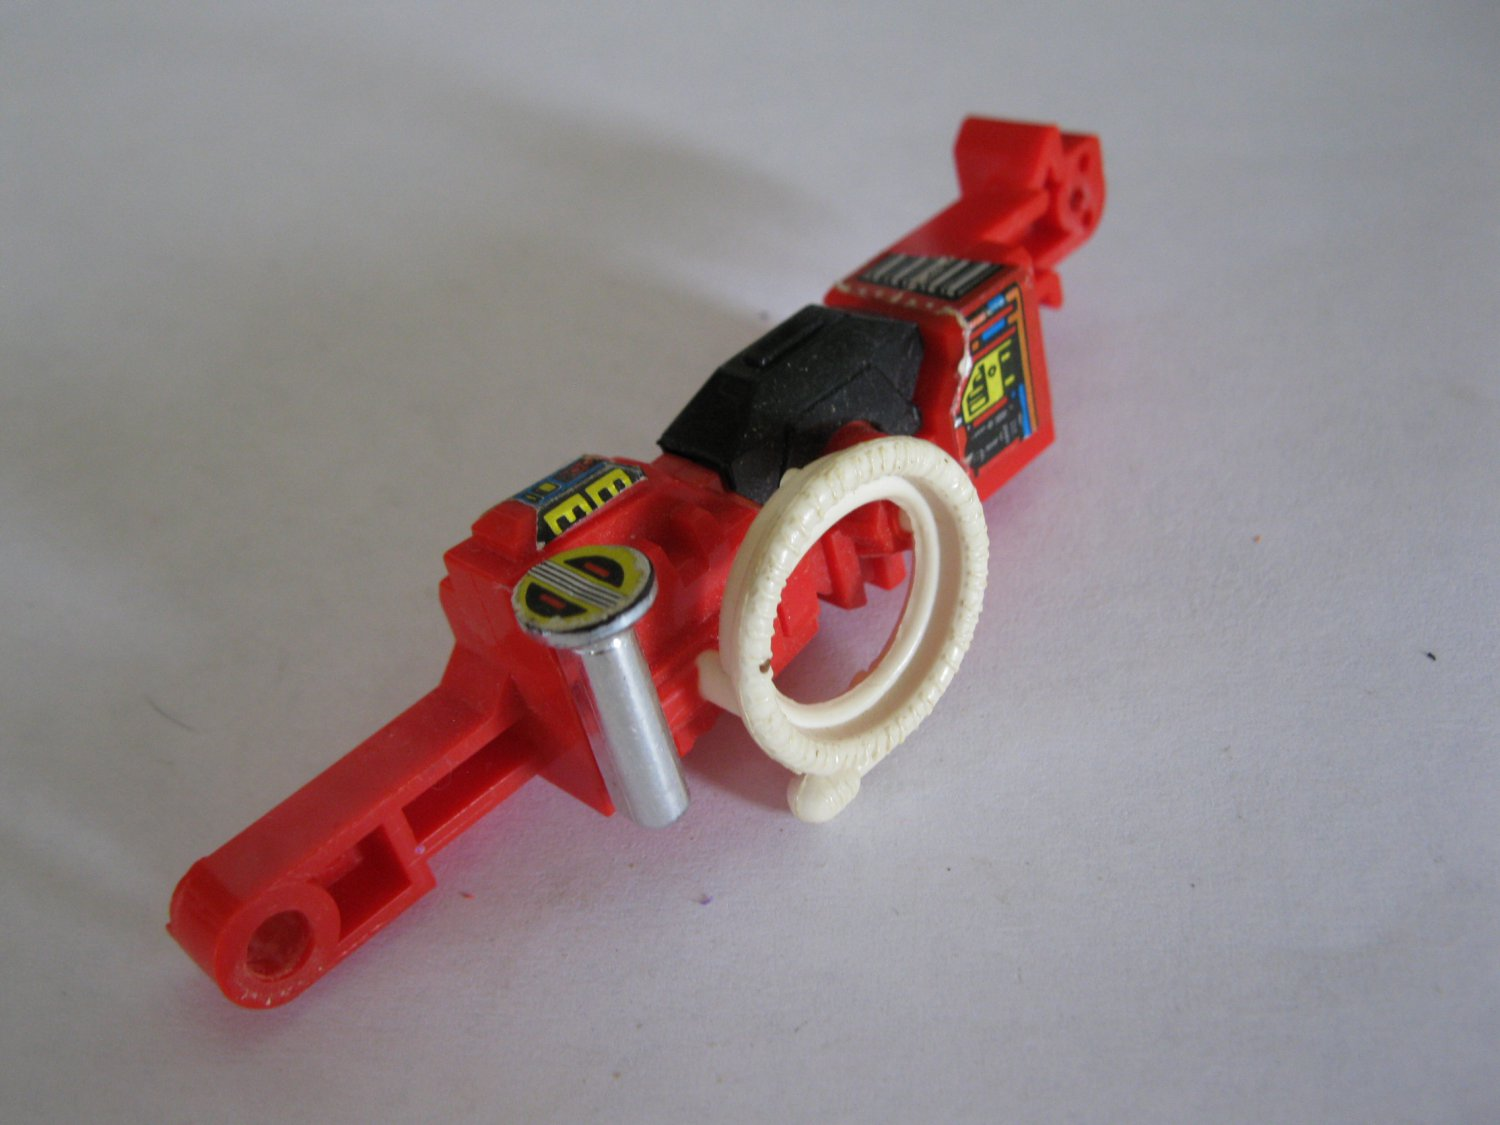 G1 Transformers Action figure part: 1985 Inferno - Left Leg